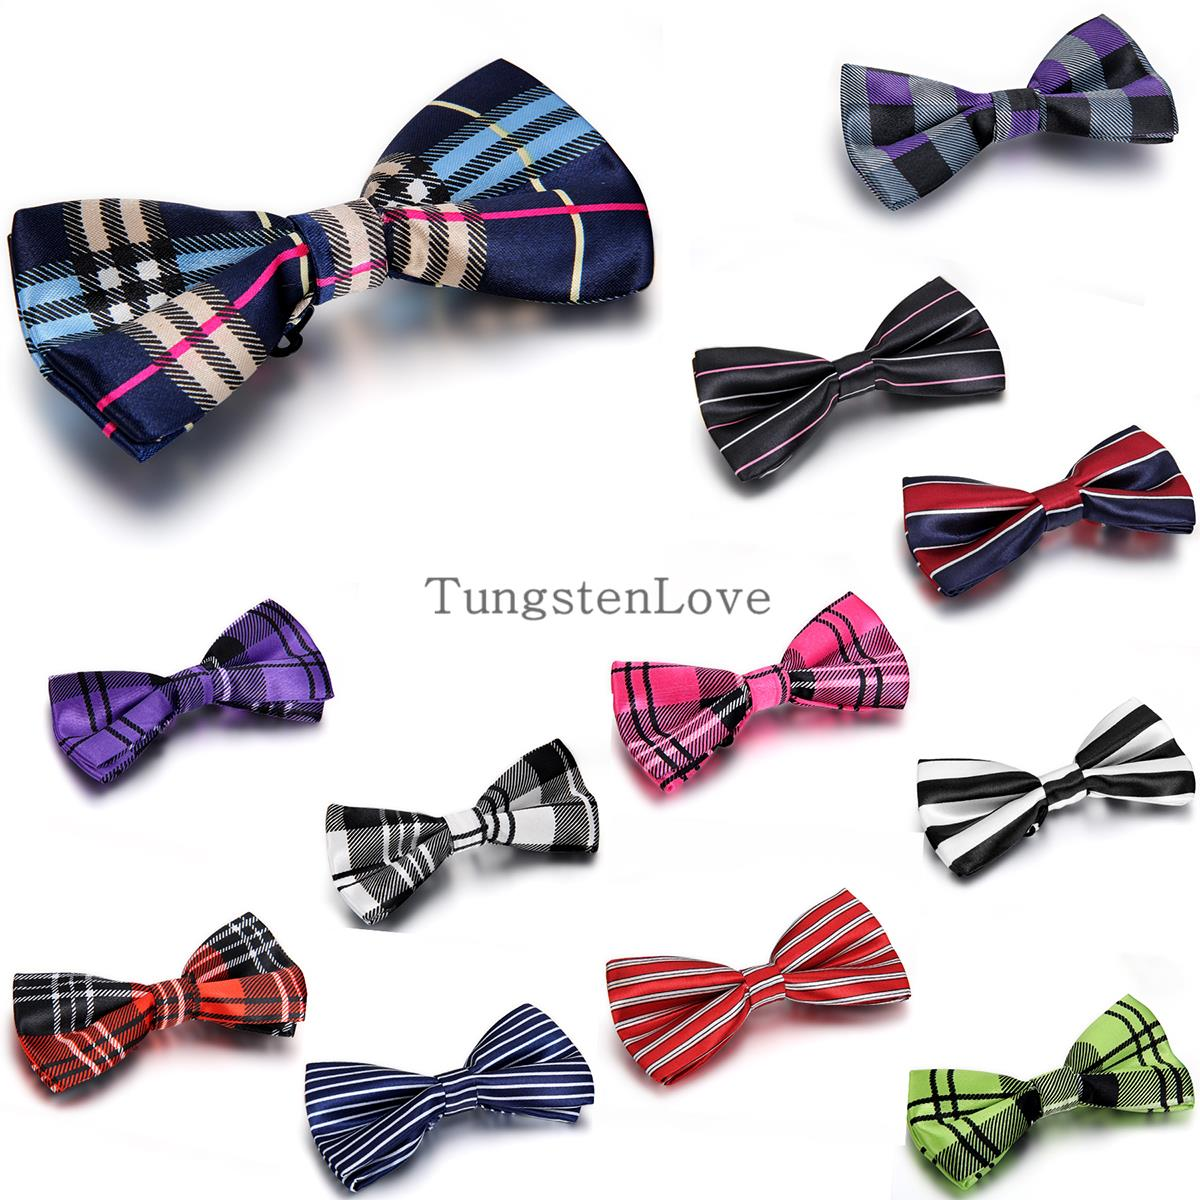 2015 Brand NEW Men's Imitation Silk Tuxedo Adjustable Striped Neck Bowtie Bow Ties for Men wedding party necktie butterfly(China (Mainland))